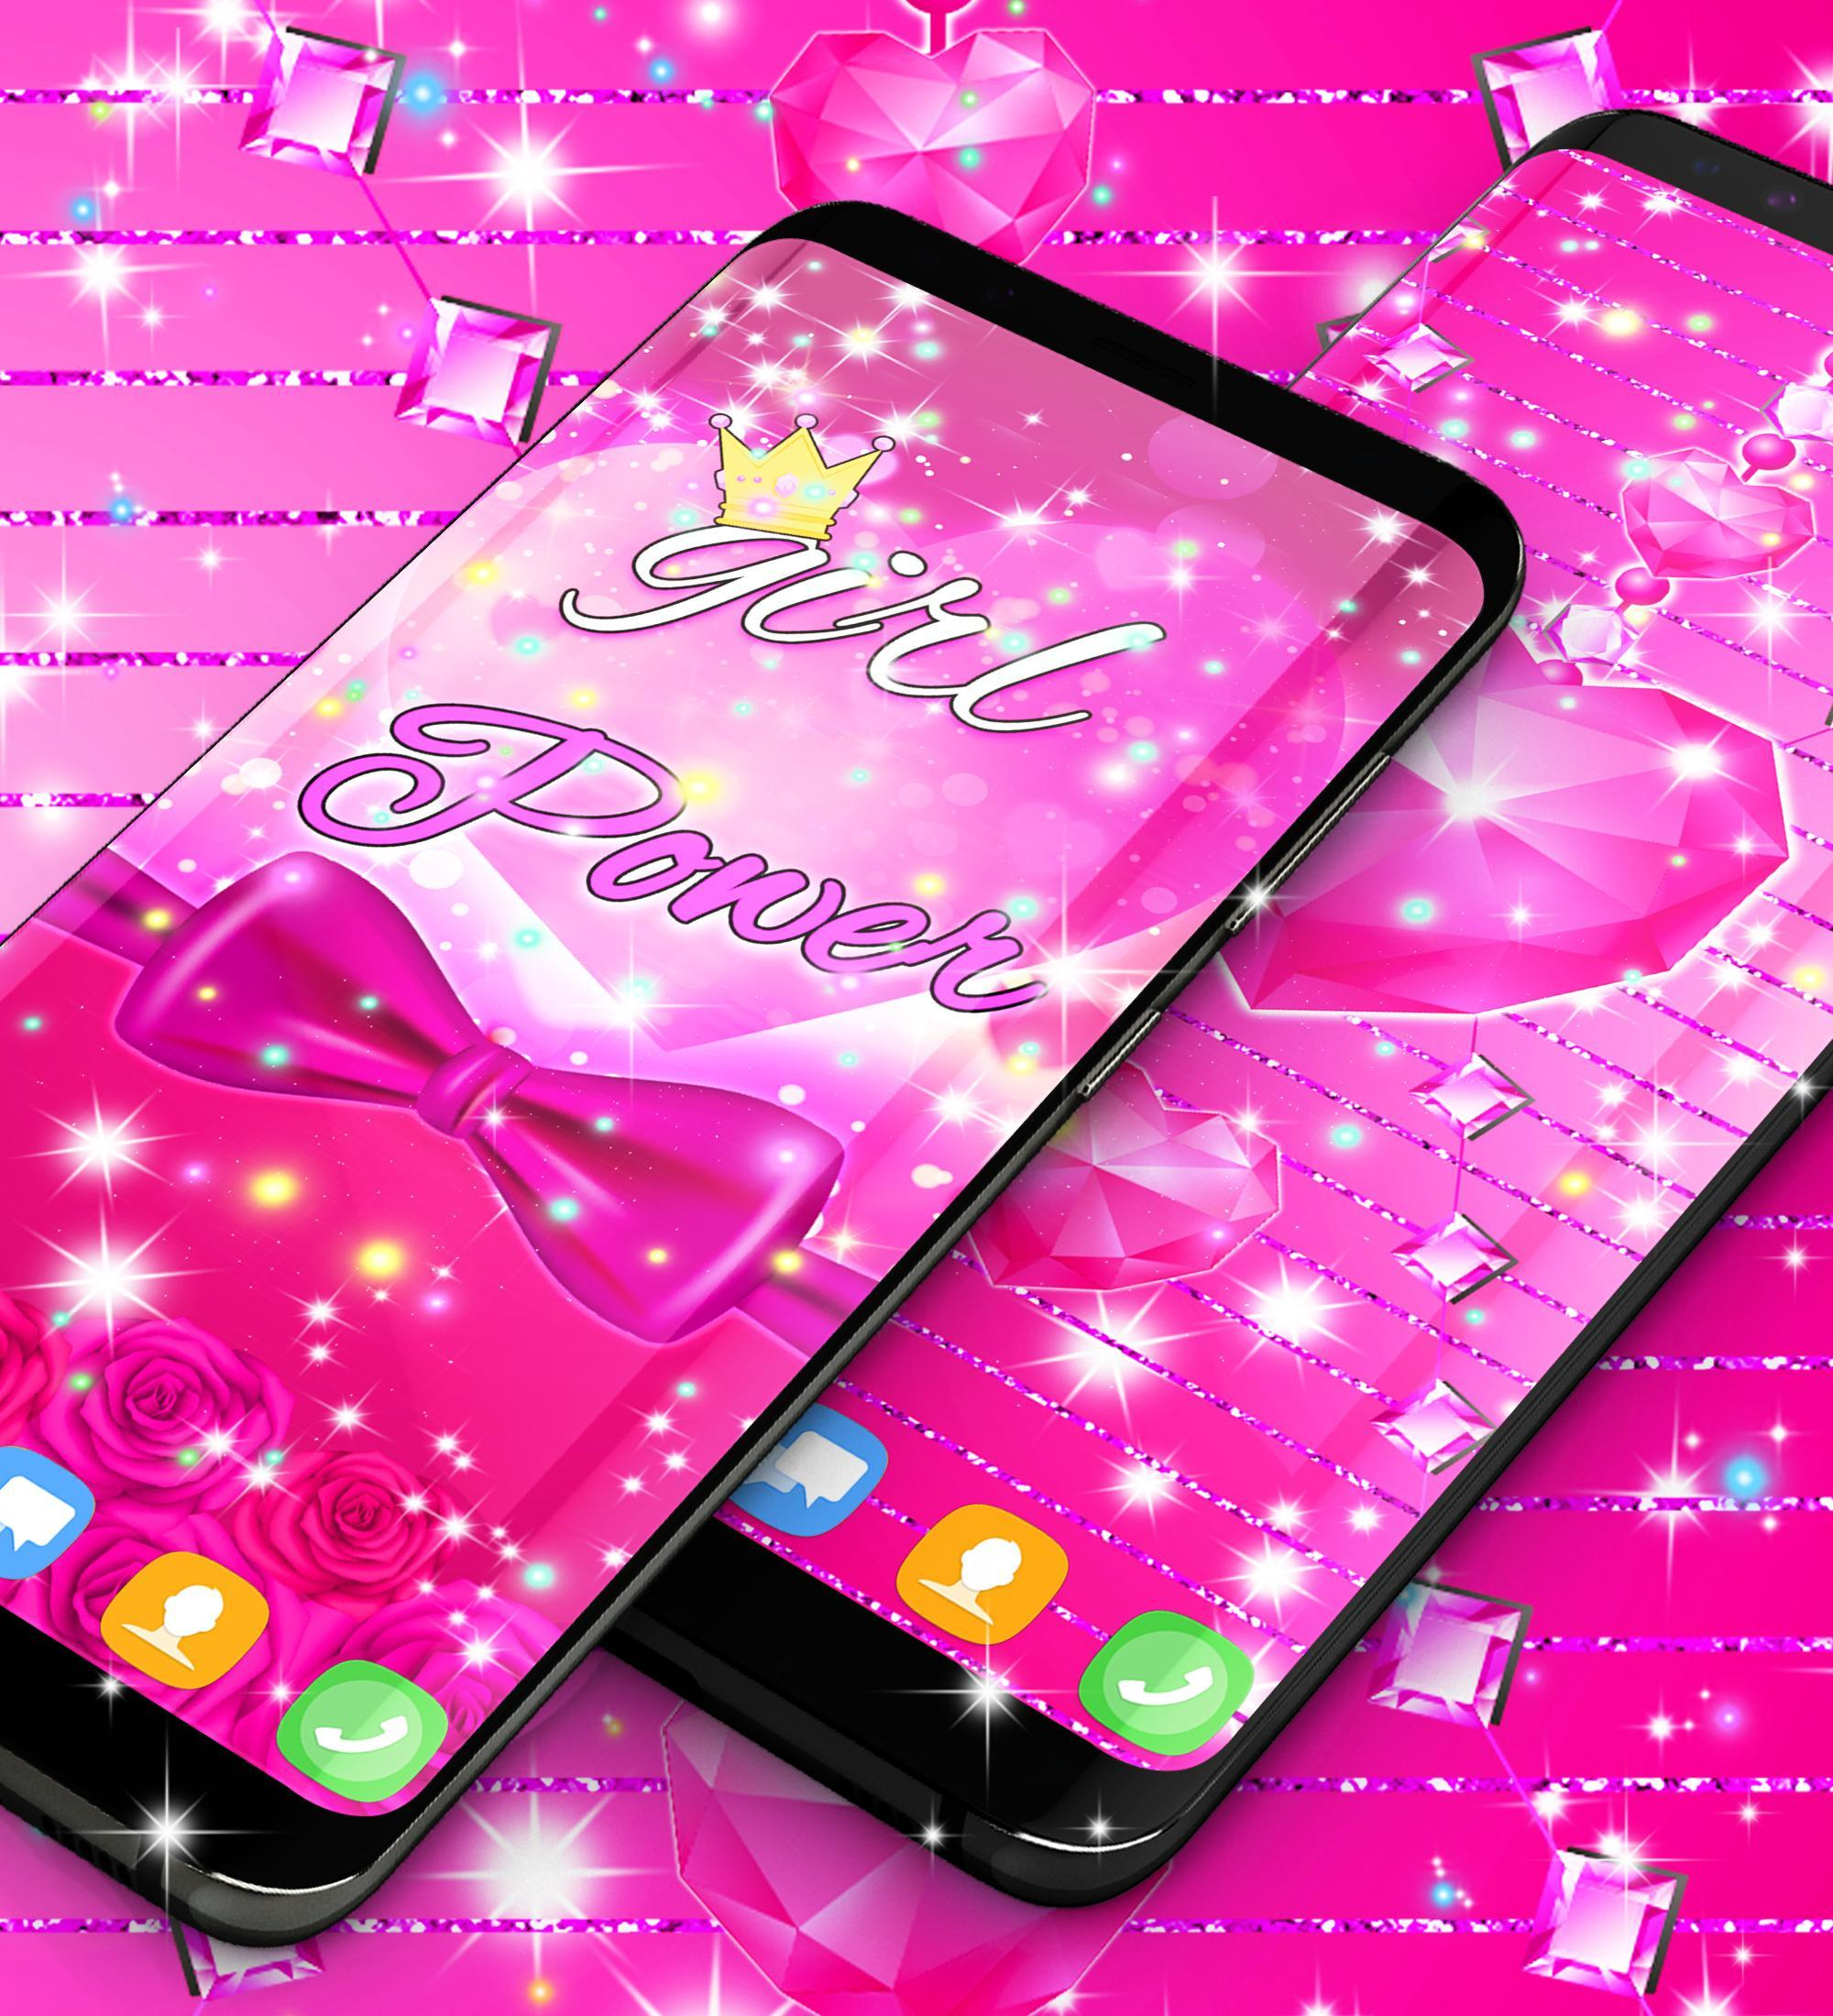 200+ Wallpaper Android Girly  Gratis